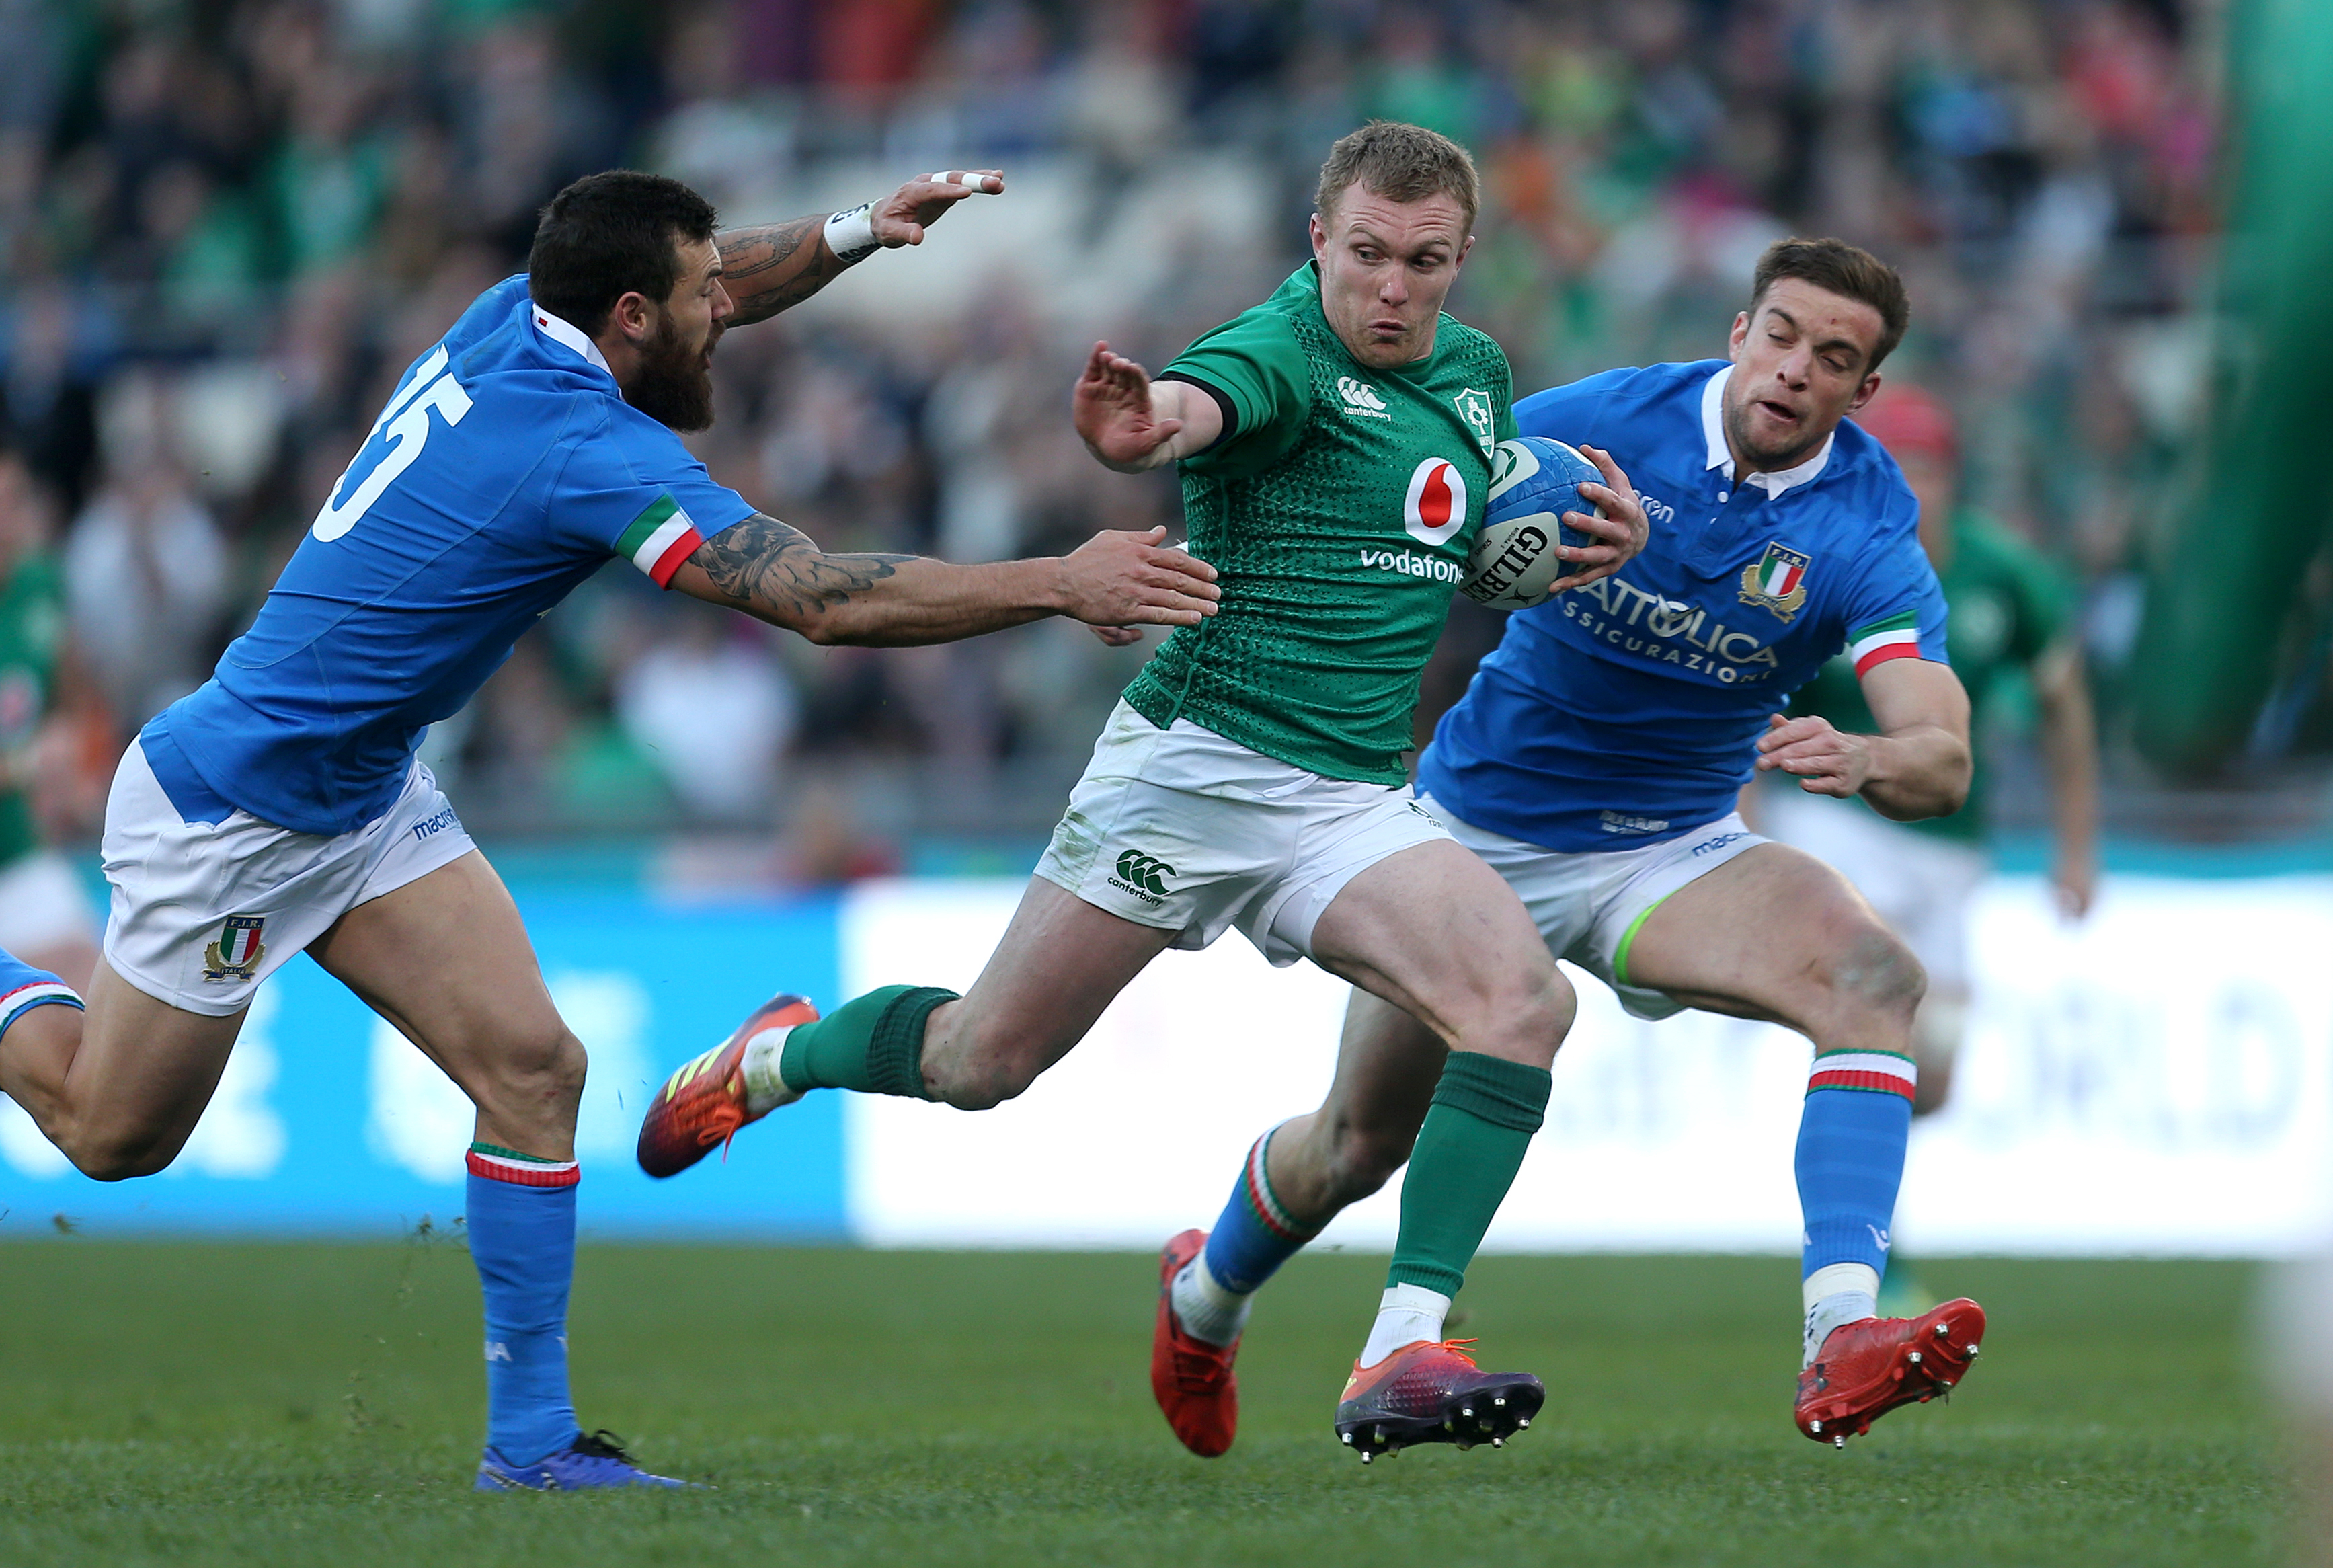 Italy vs Ireland - Report - Six Nations 2019 - 25 Feb, 2019